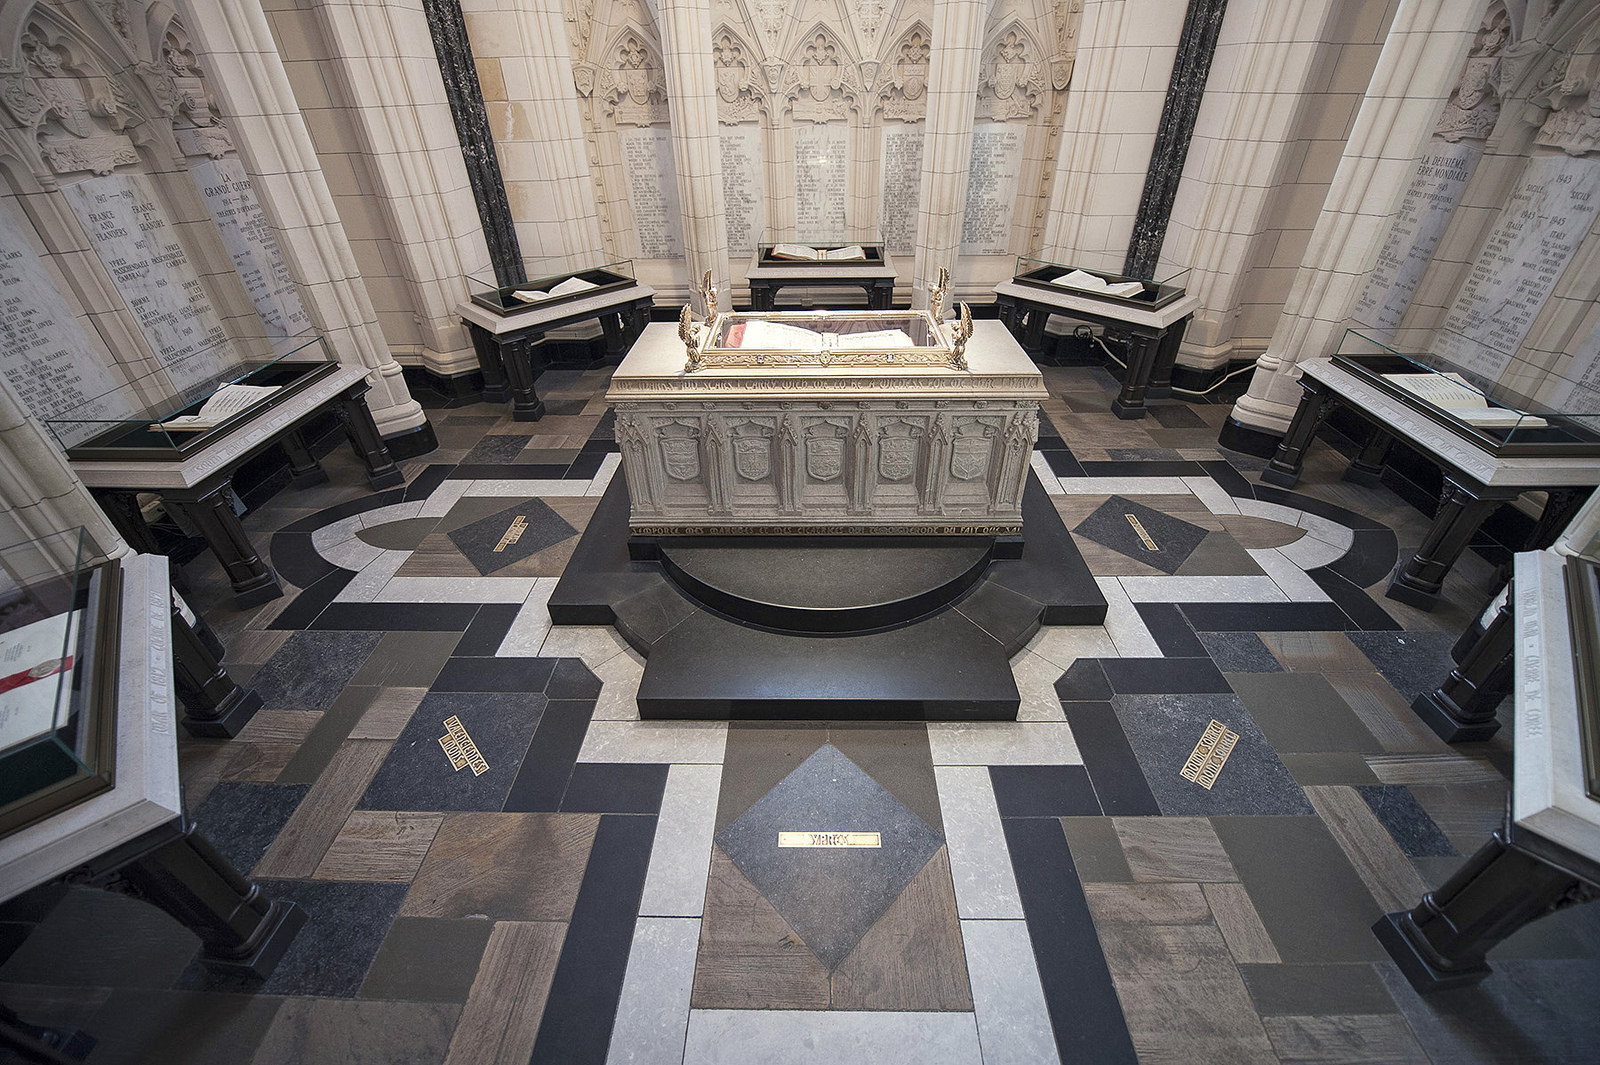 View enlarged image of the Memorial Chamber